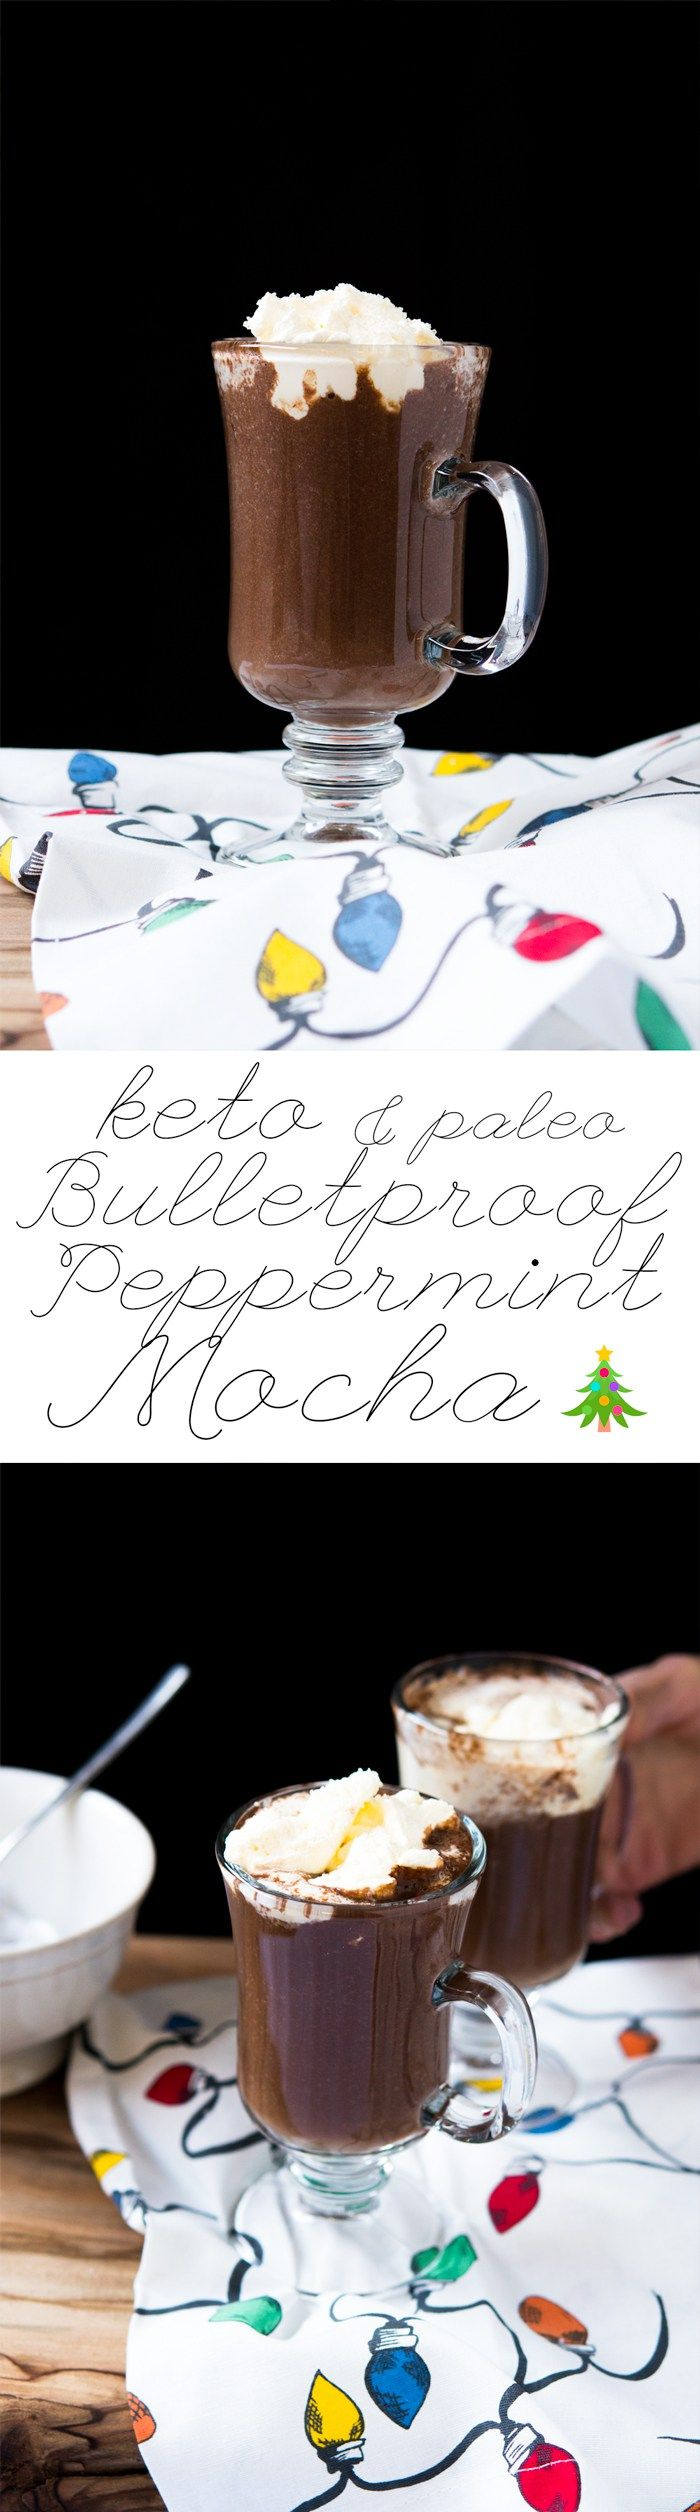 Paleo & Keto Bulletproof Peppermint Mocha Thick, Creamy and just 2g net carbs! #ketopeppermintmocha #bpc